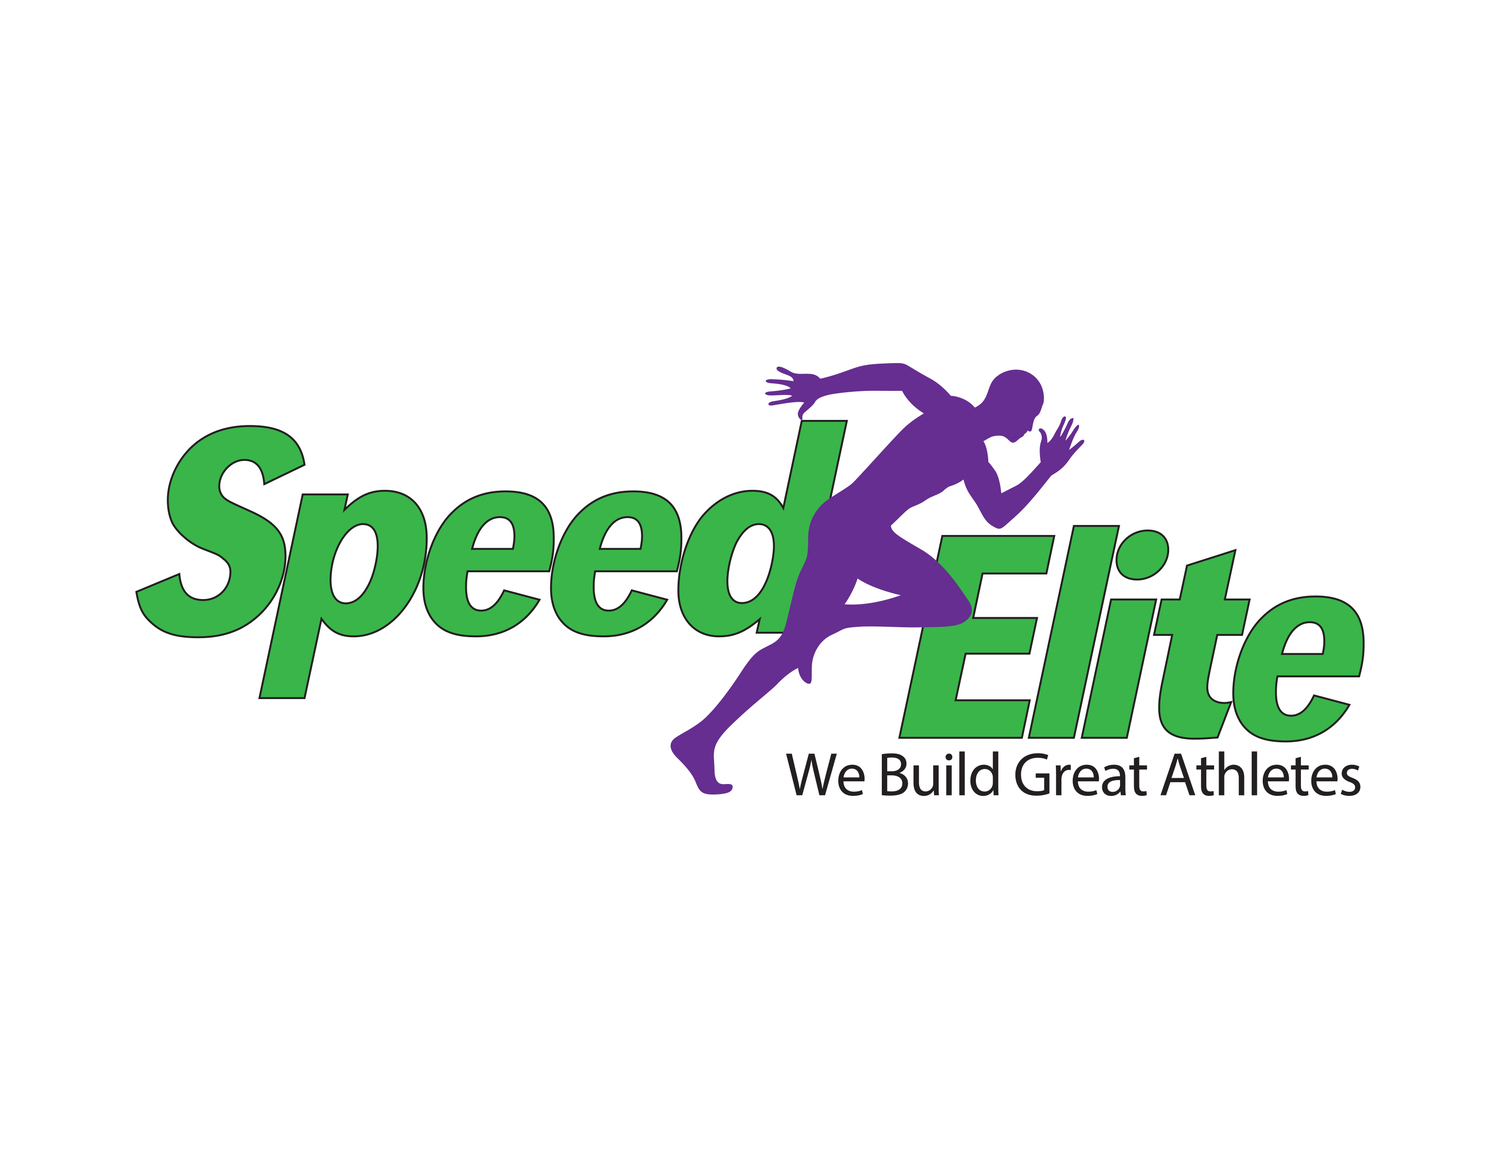 Speed Elite